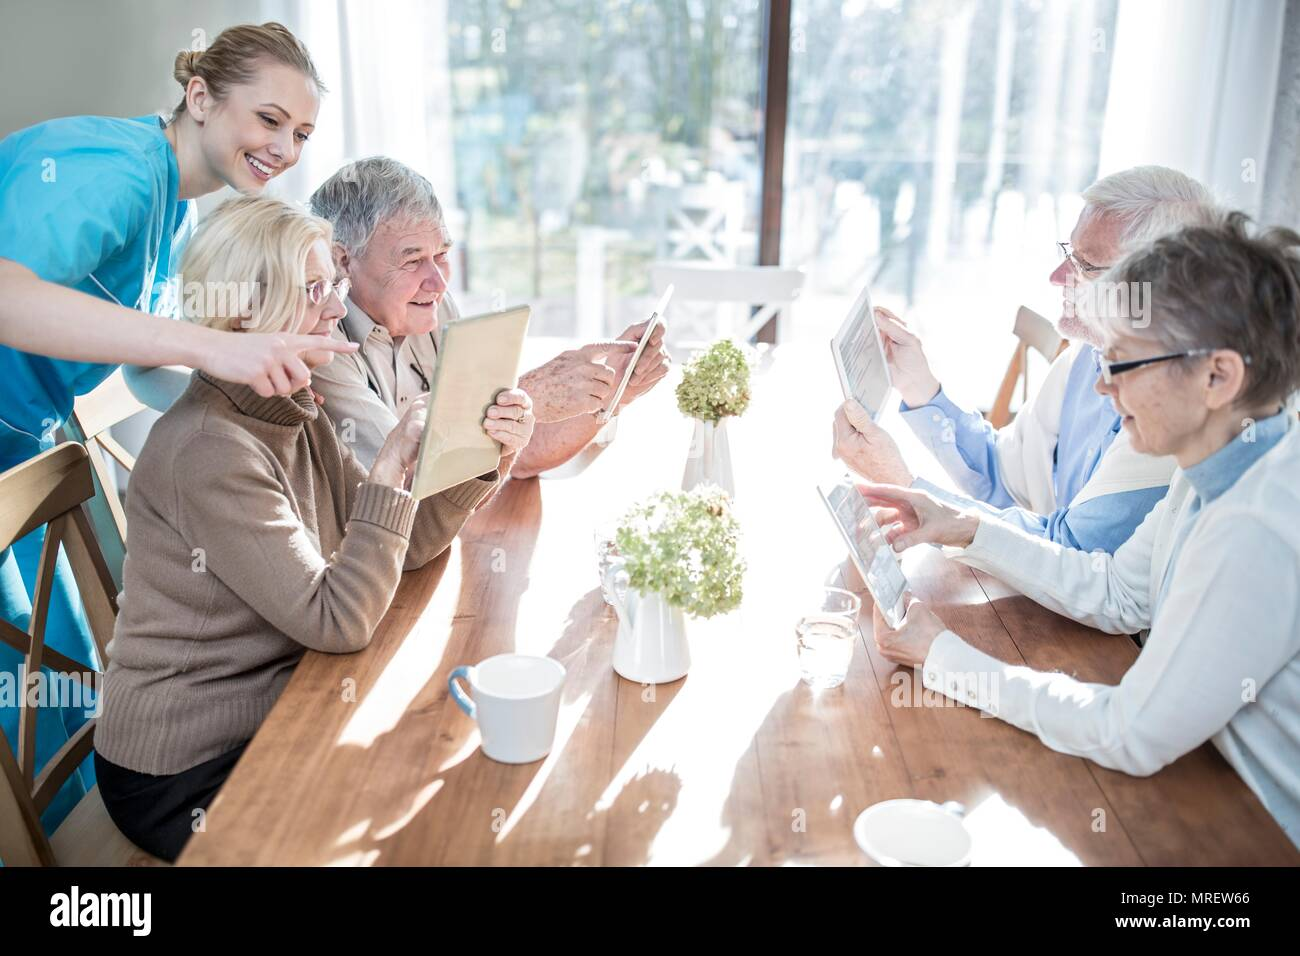 Senior adults using digital tablets in care home. - Stock Image